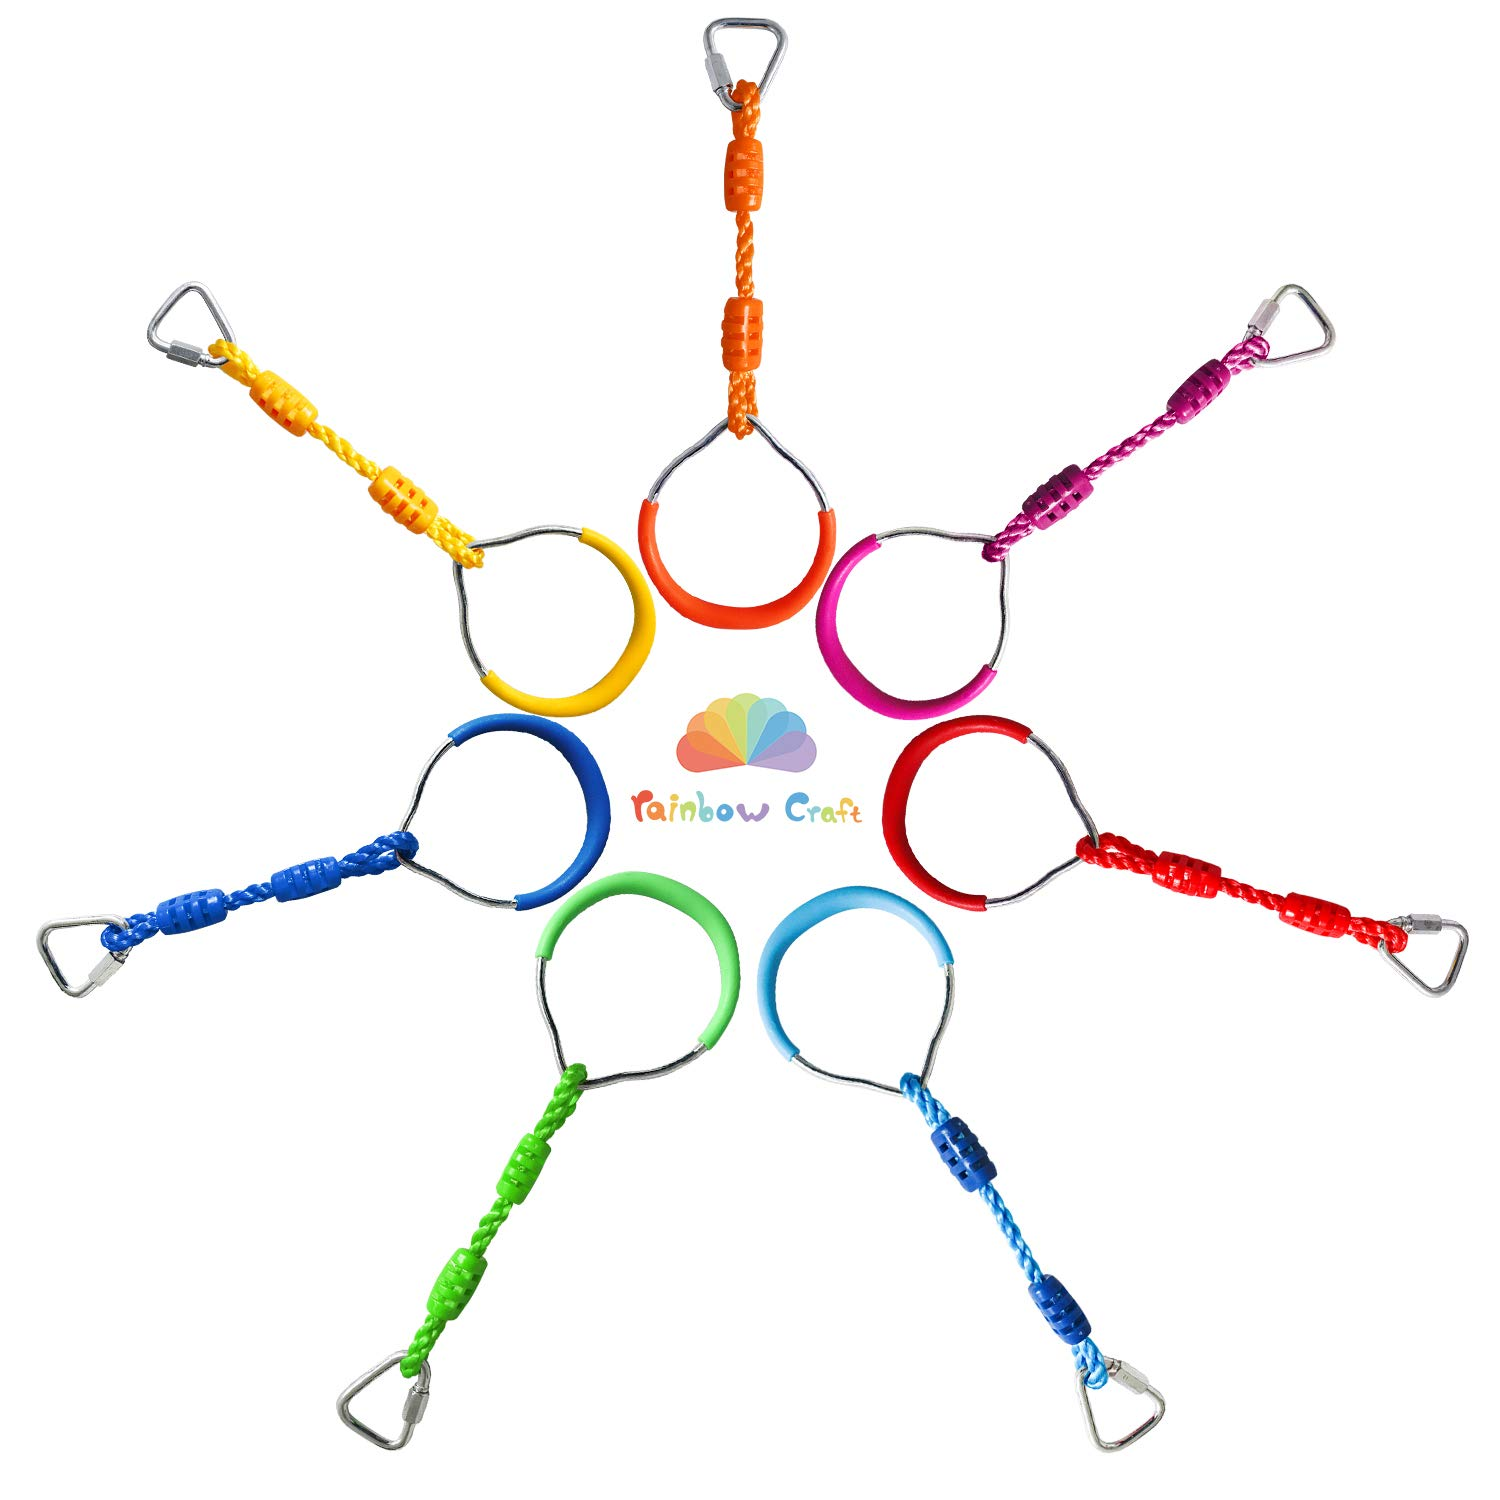 Rainbow Craft Swing Bar Rings - Colorful Backyard Outdoor Gymnastic Ring, Ninja Ring, Monkey Ring, Climbing Ring and Obstacle Ring- 7 pcs Pack by Rainbow Craft